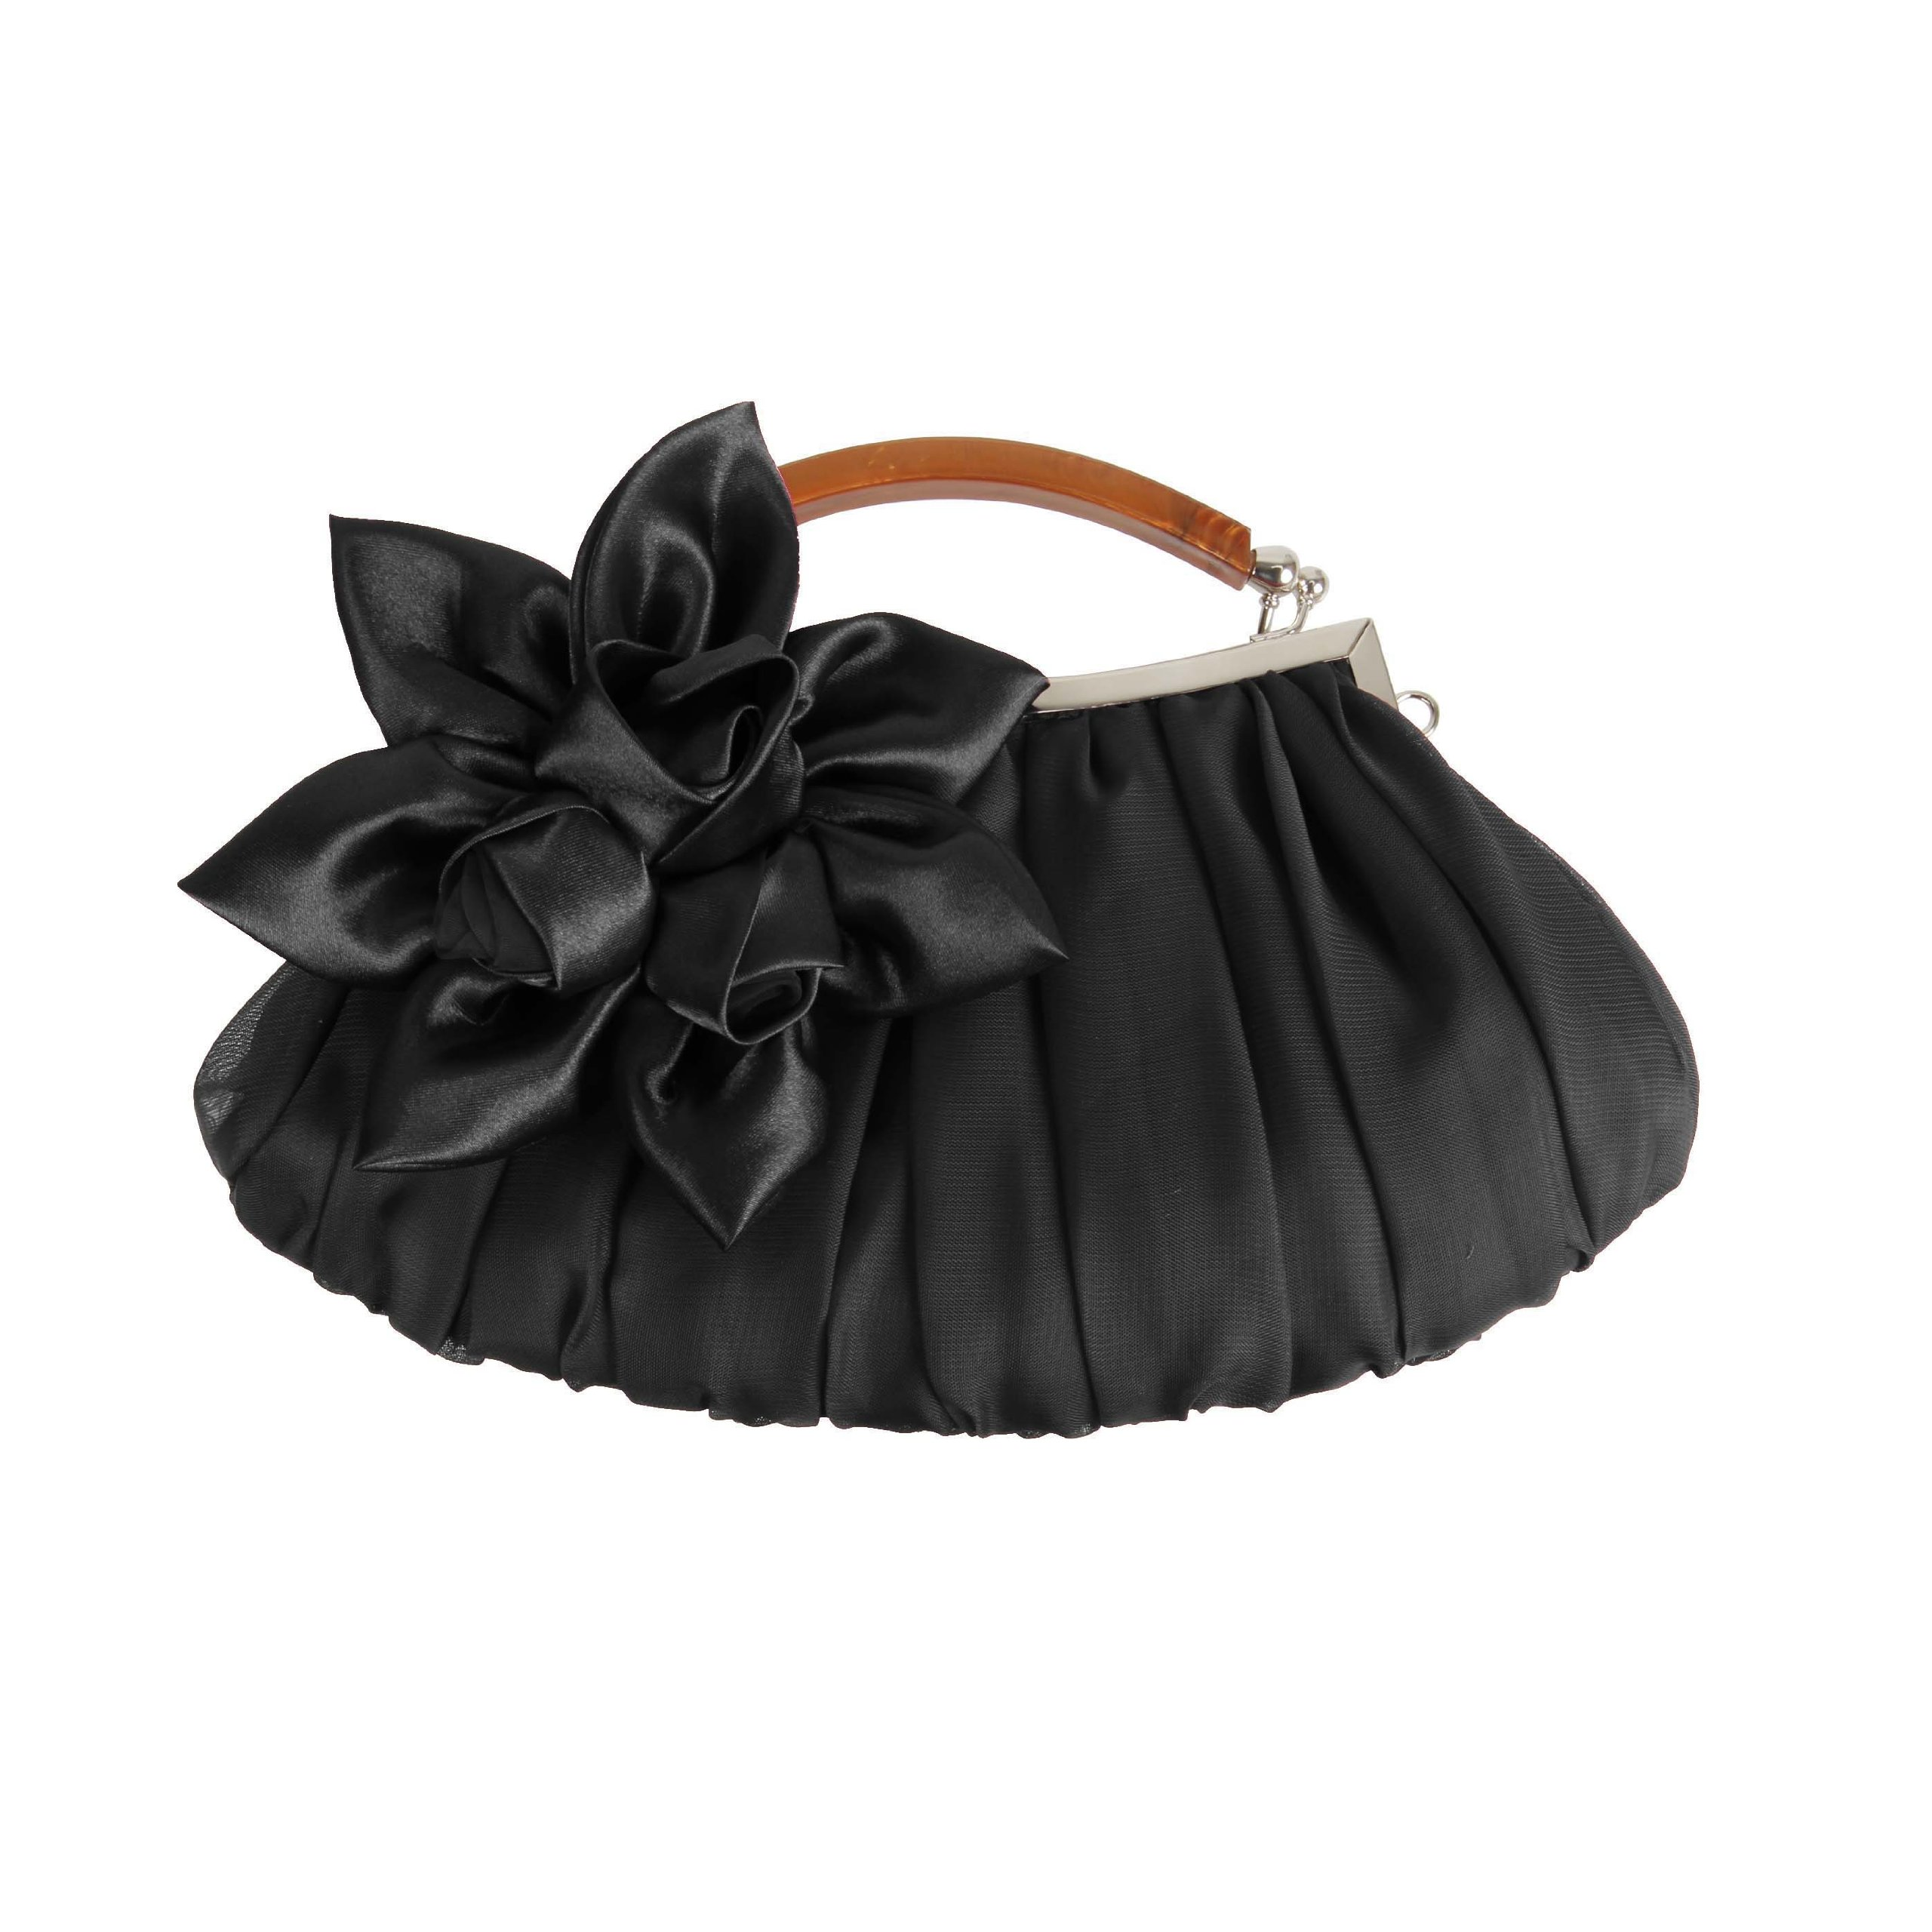 BMC Black Floral Embellished Sheer Chiffon Exterior Kissing Lock Clasp Resin Handle Framed Party Clutch - Evening Out Collection